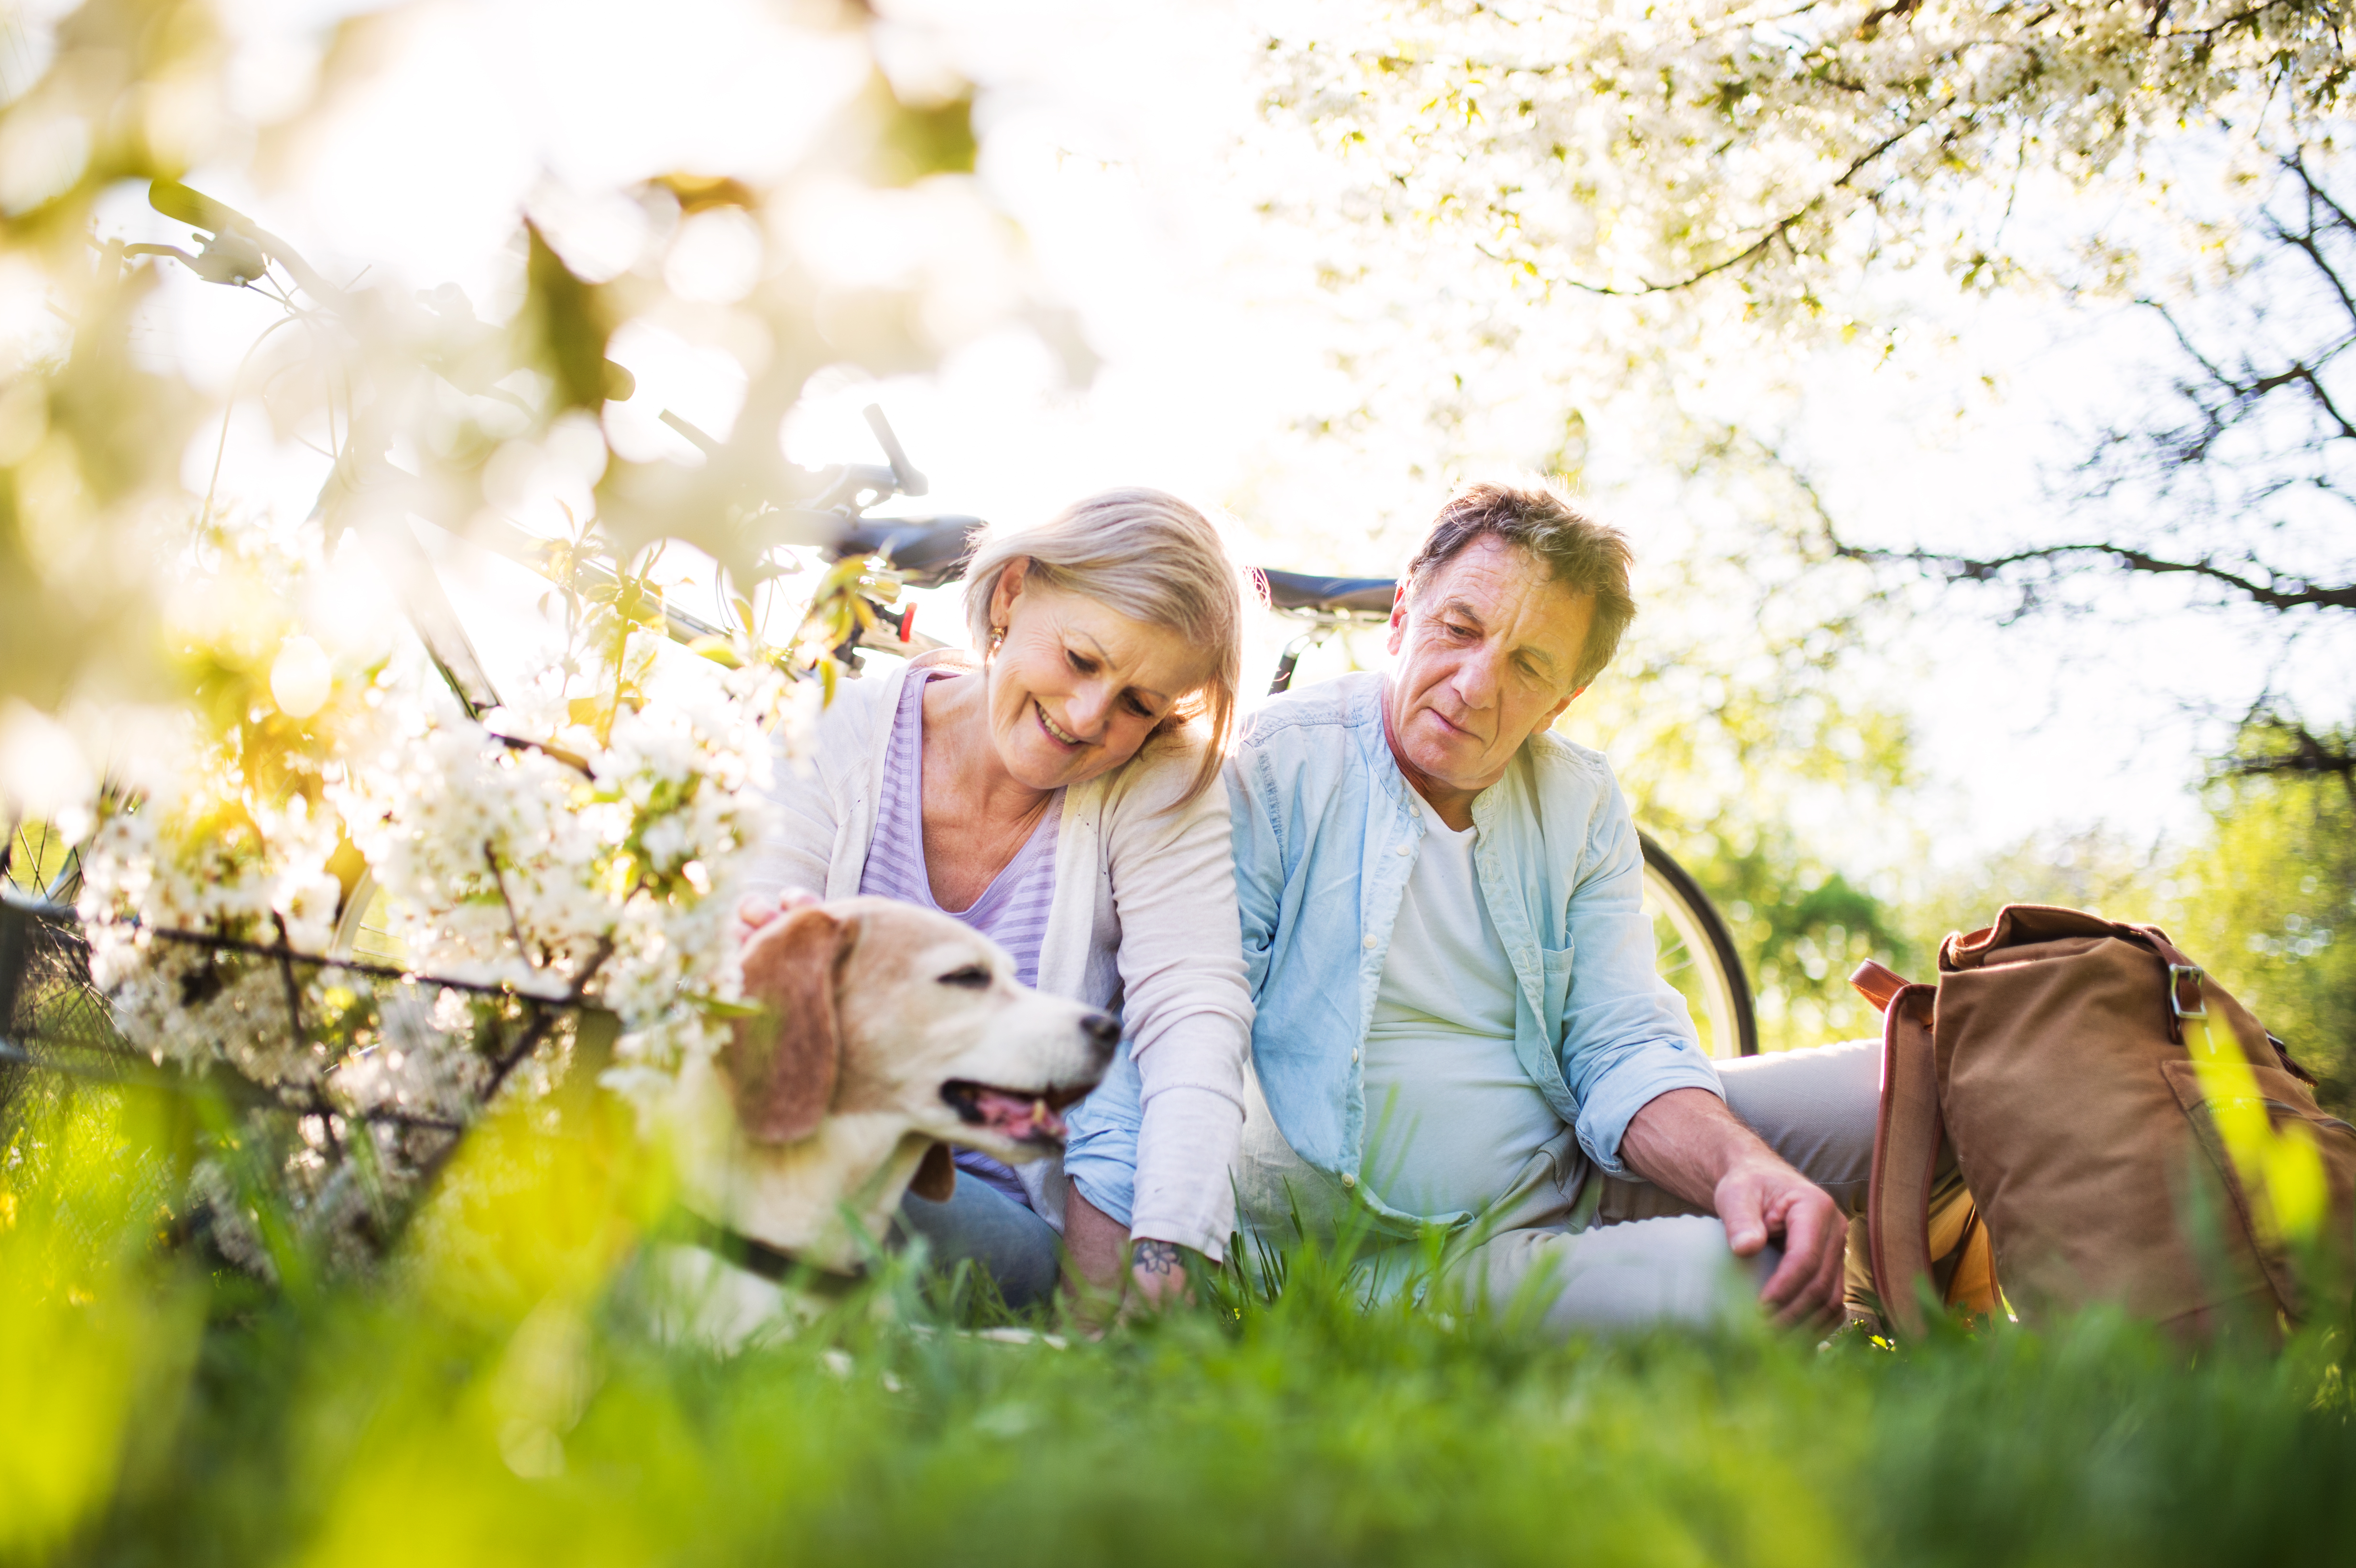 Elderly white couple sitting on the ground and petting a light colored labrador.